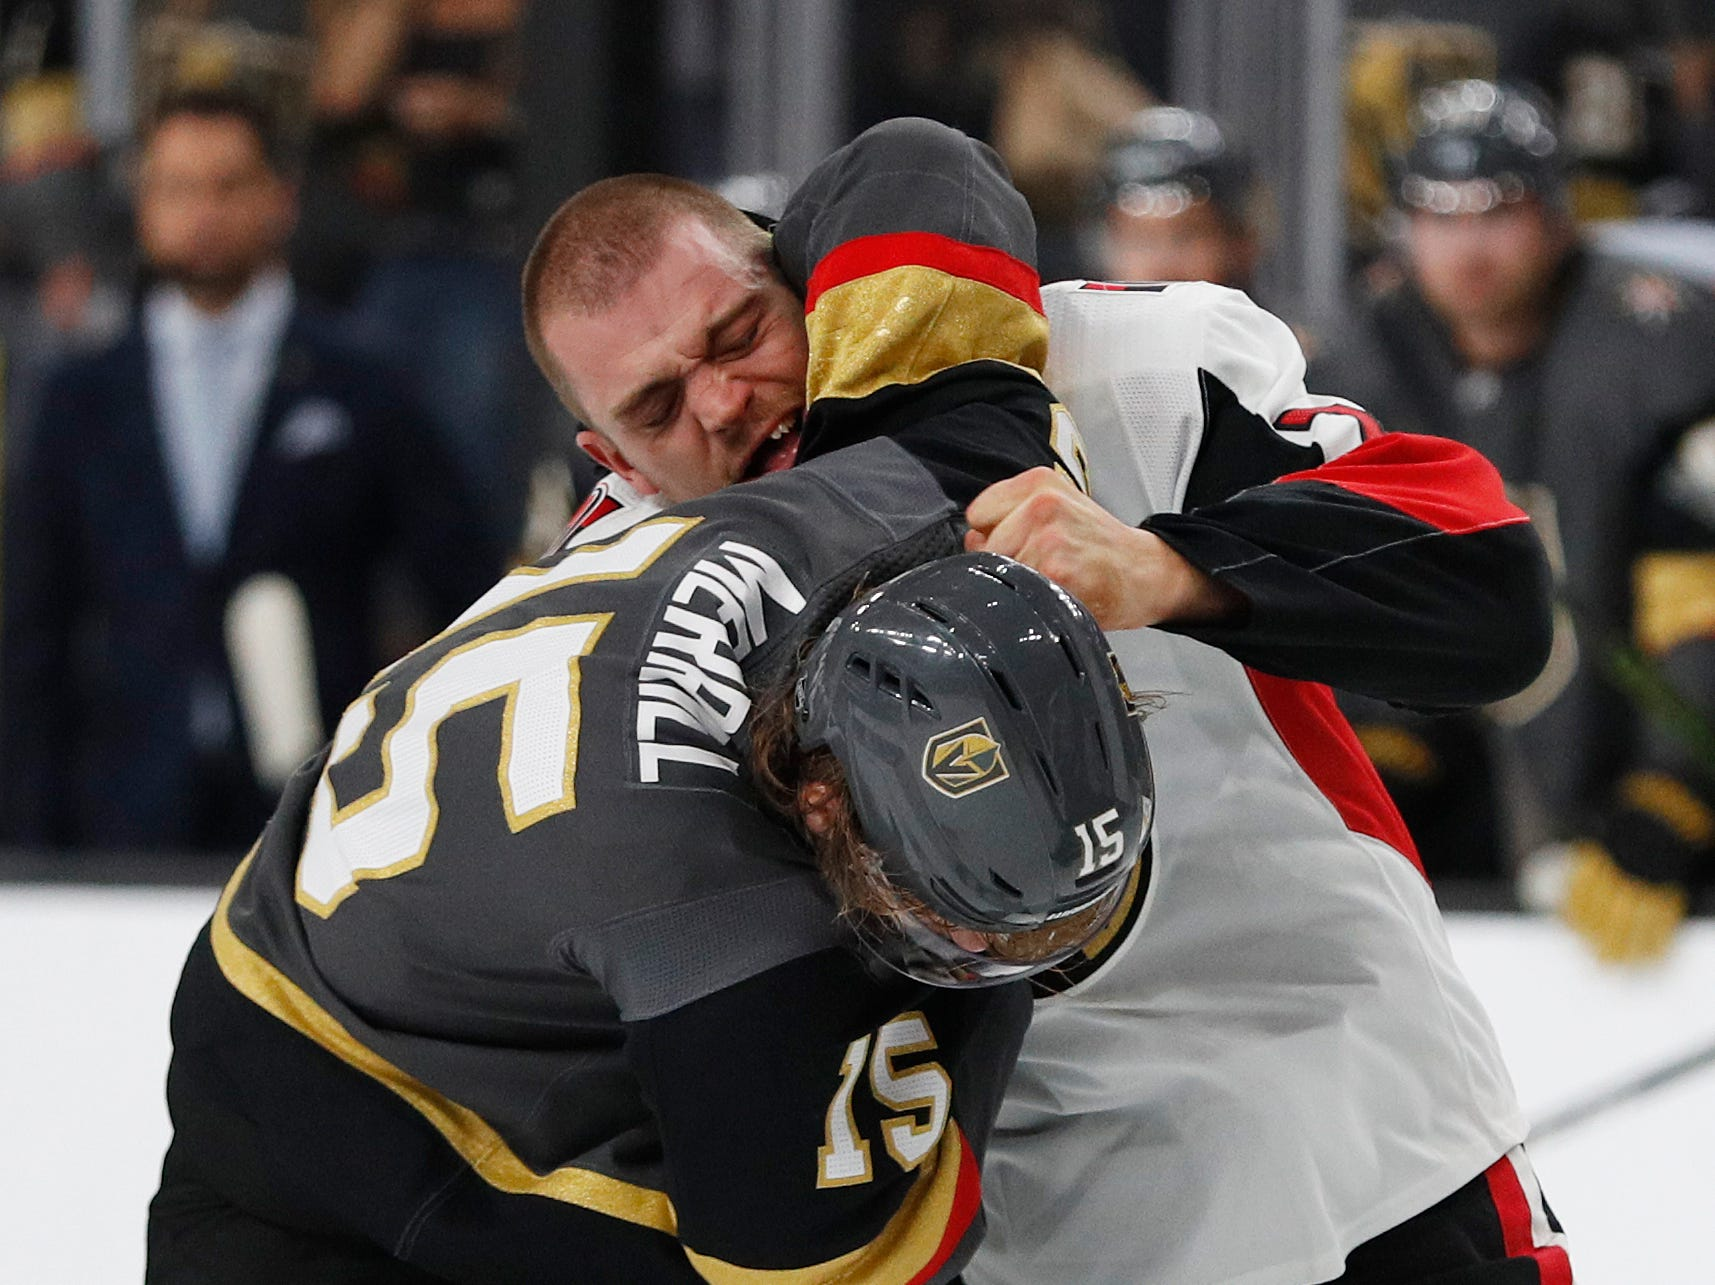 Mark Borowiecki (right) was suspended one game for an elbowing penalty against the Bruins on Oct. 23 and three games for an illegal check to the head against the Vegas Golden Knights on Oct. 28. Combined pay lost: $50,354.06.